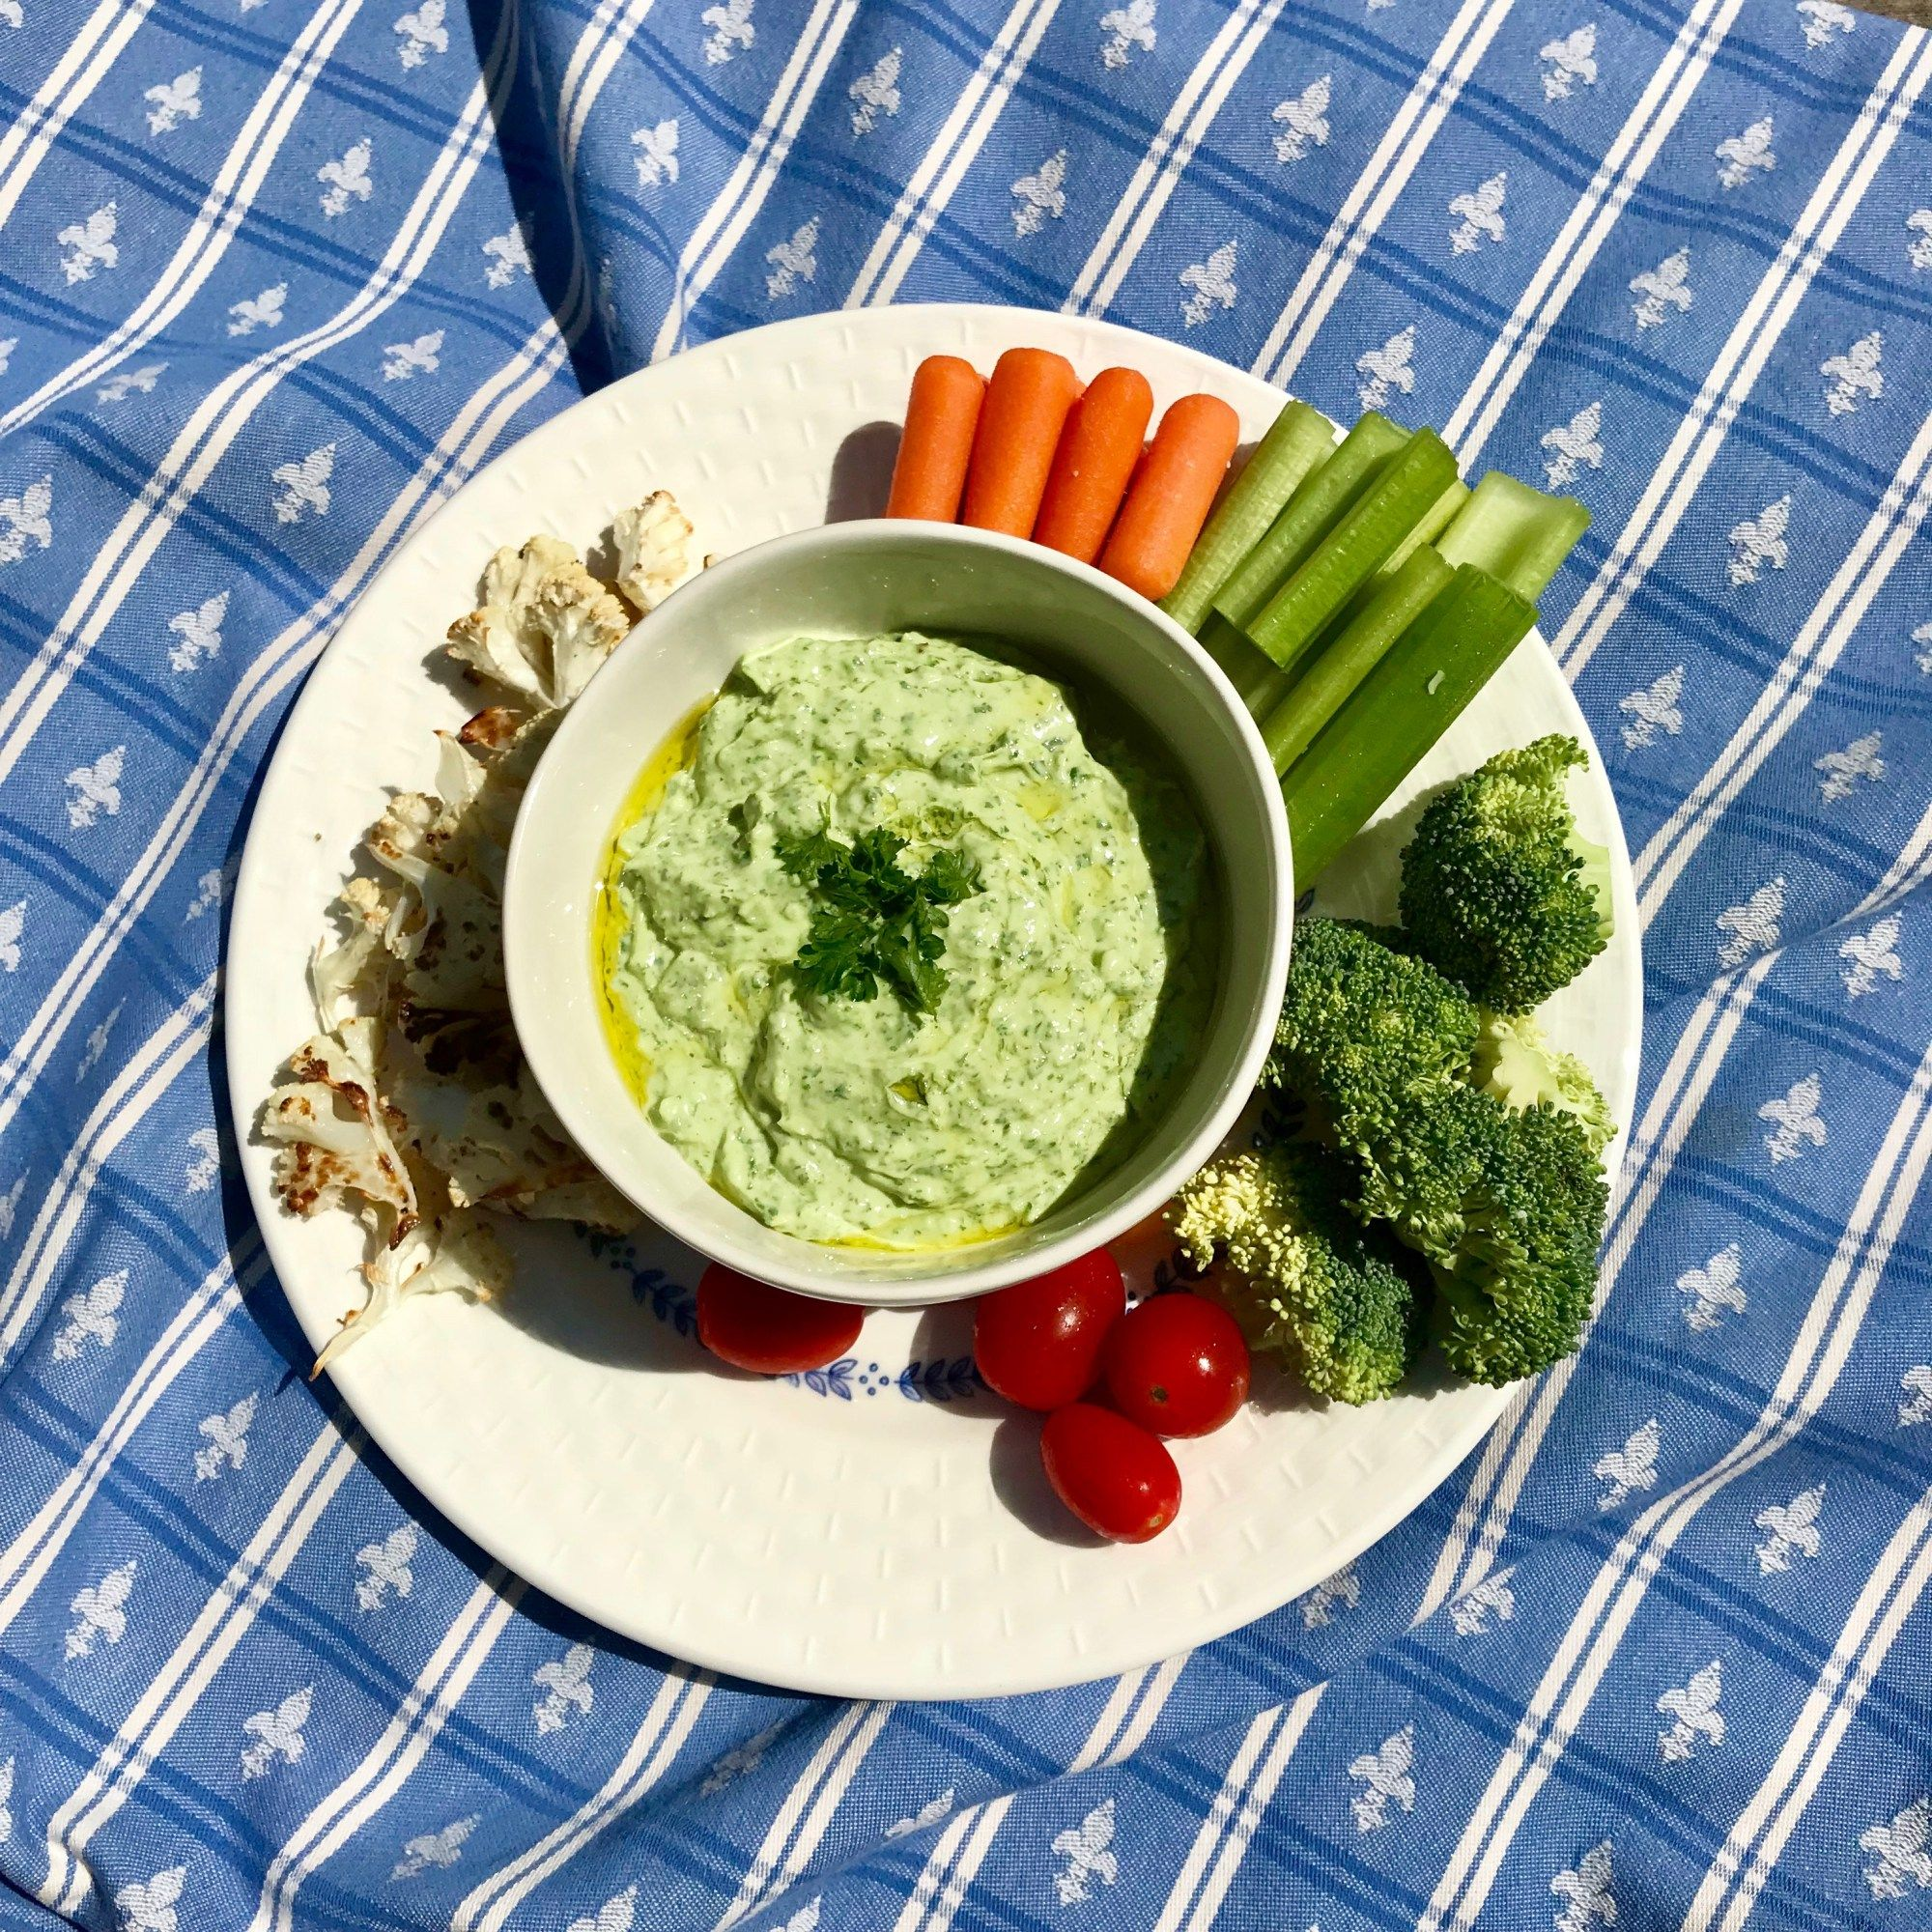 Green Goddess Salad Wraps with Basil Pesto Green Goddess Salad Wraps with Basil Pesto new picture